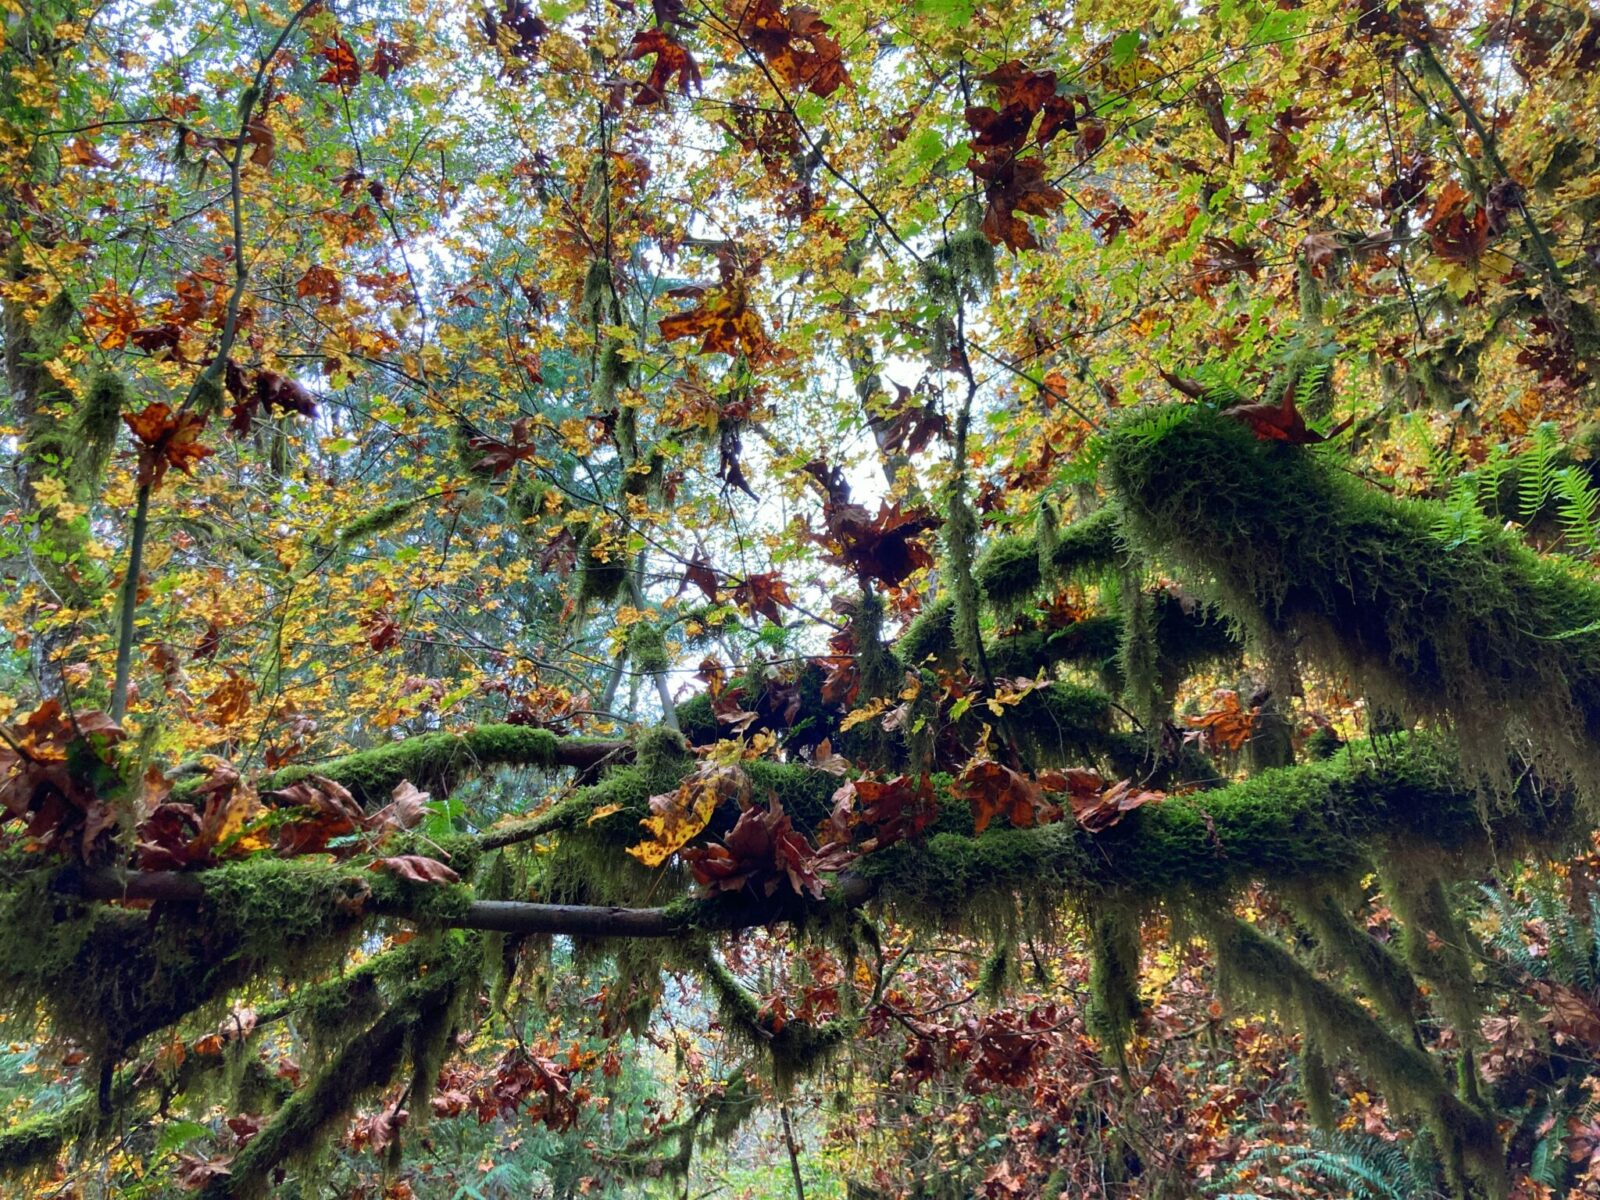 A branch in the forest covered in moss with orange and brown fall maple leaves on it in a forest on a cloudy day